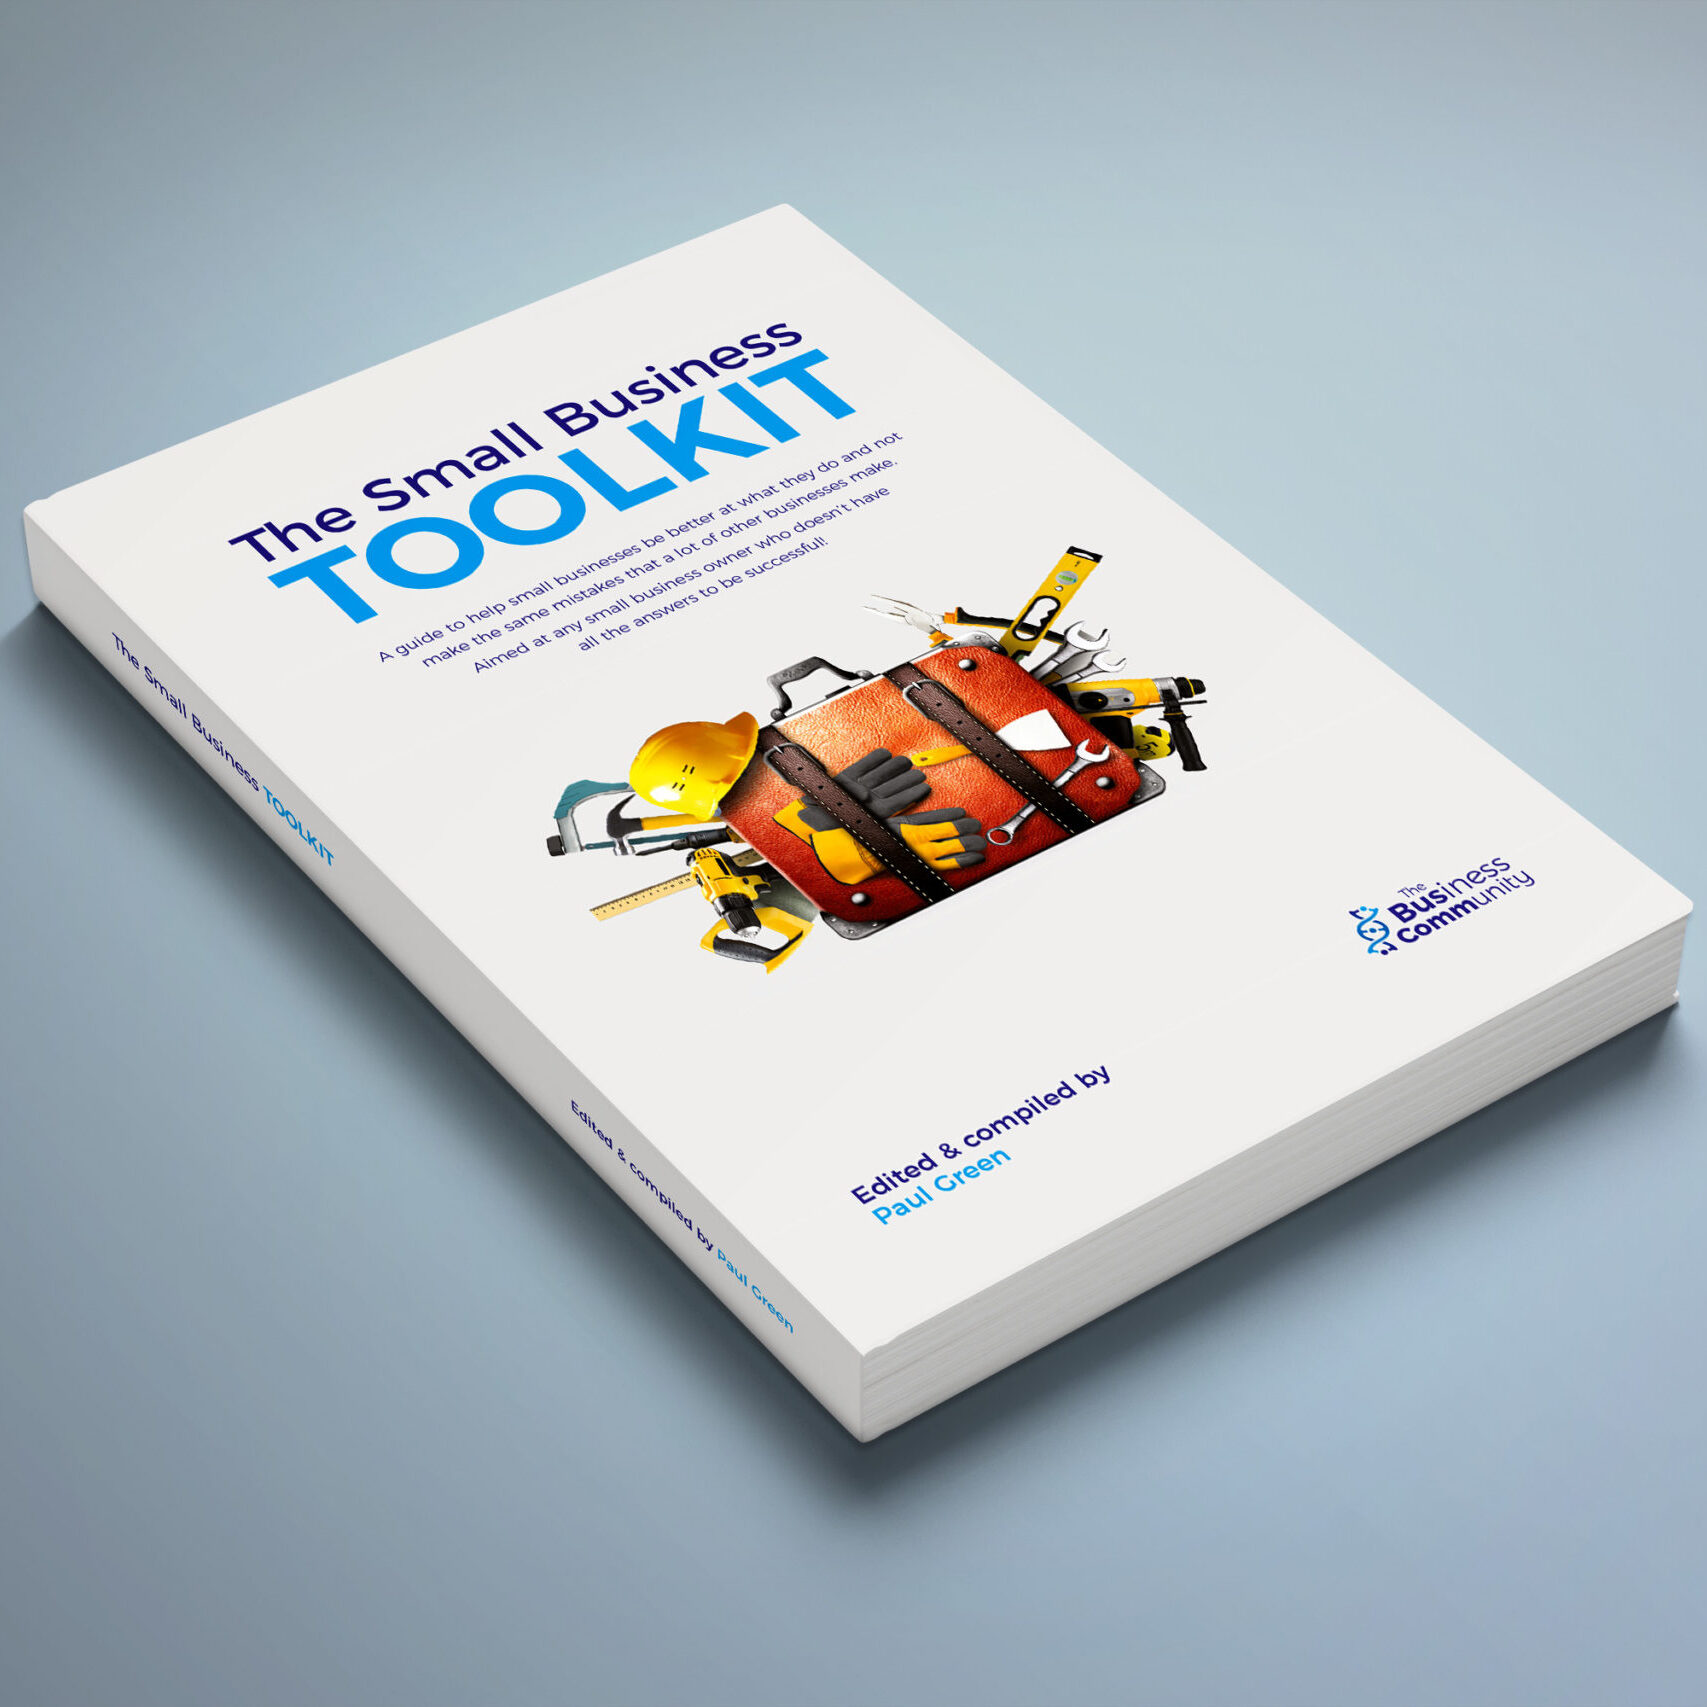 Book cover design for the Small Business Toolkit